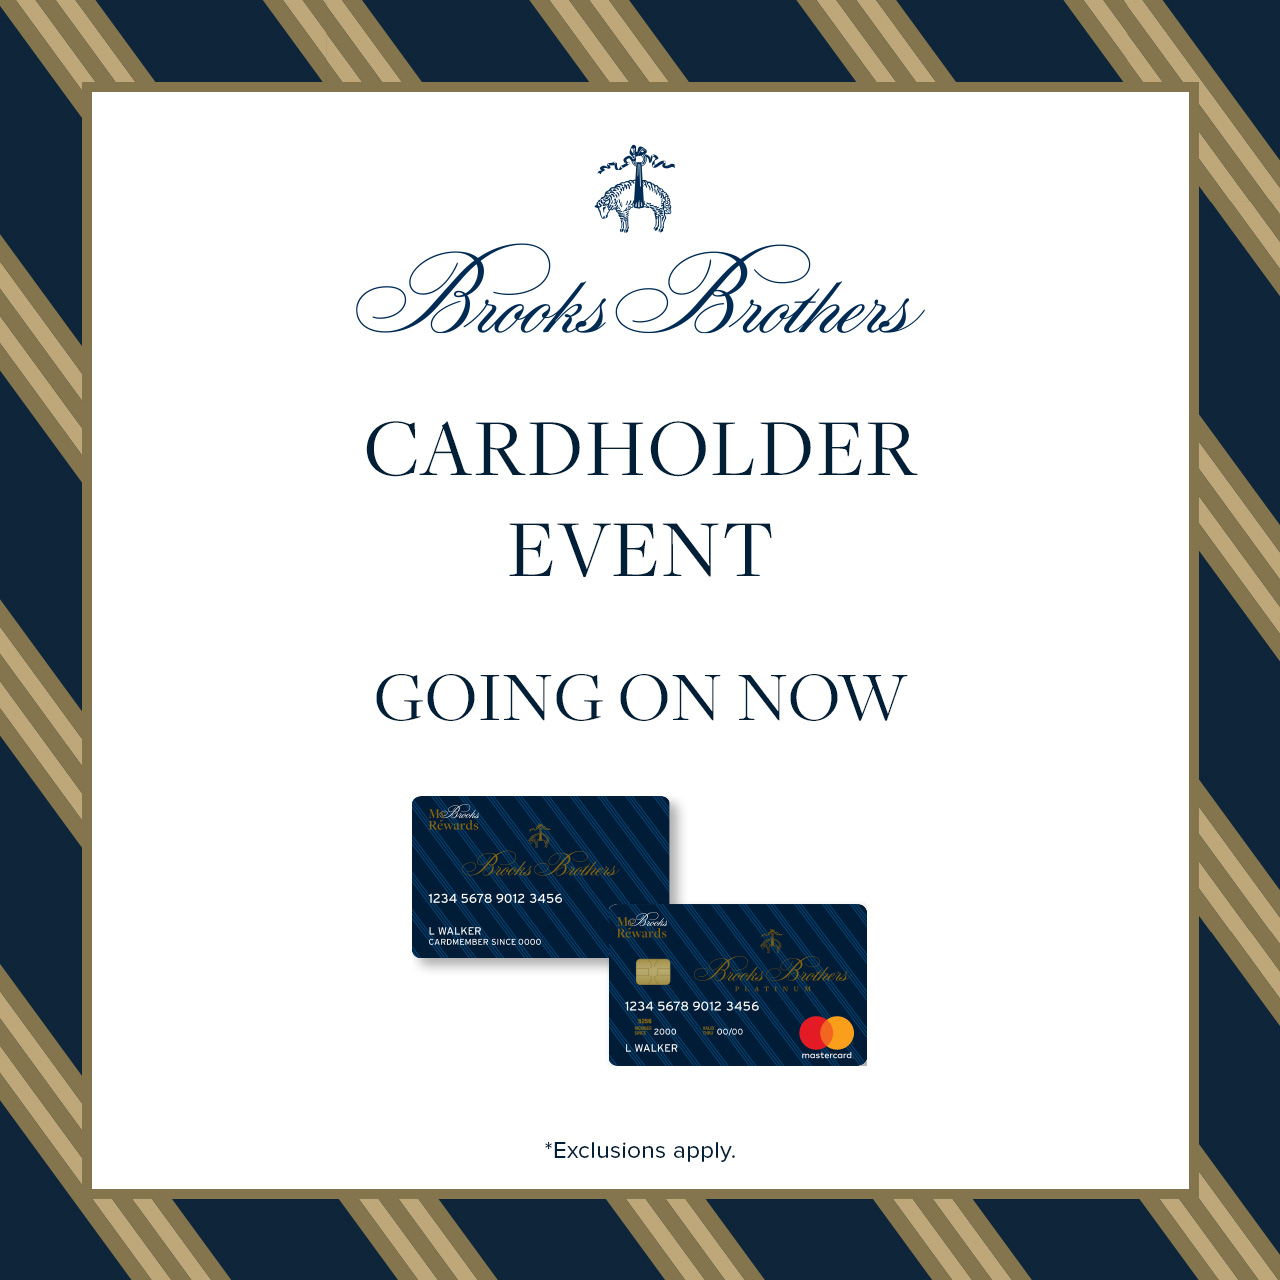 Cardholder Event from Brooks Brothers